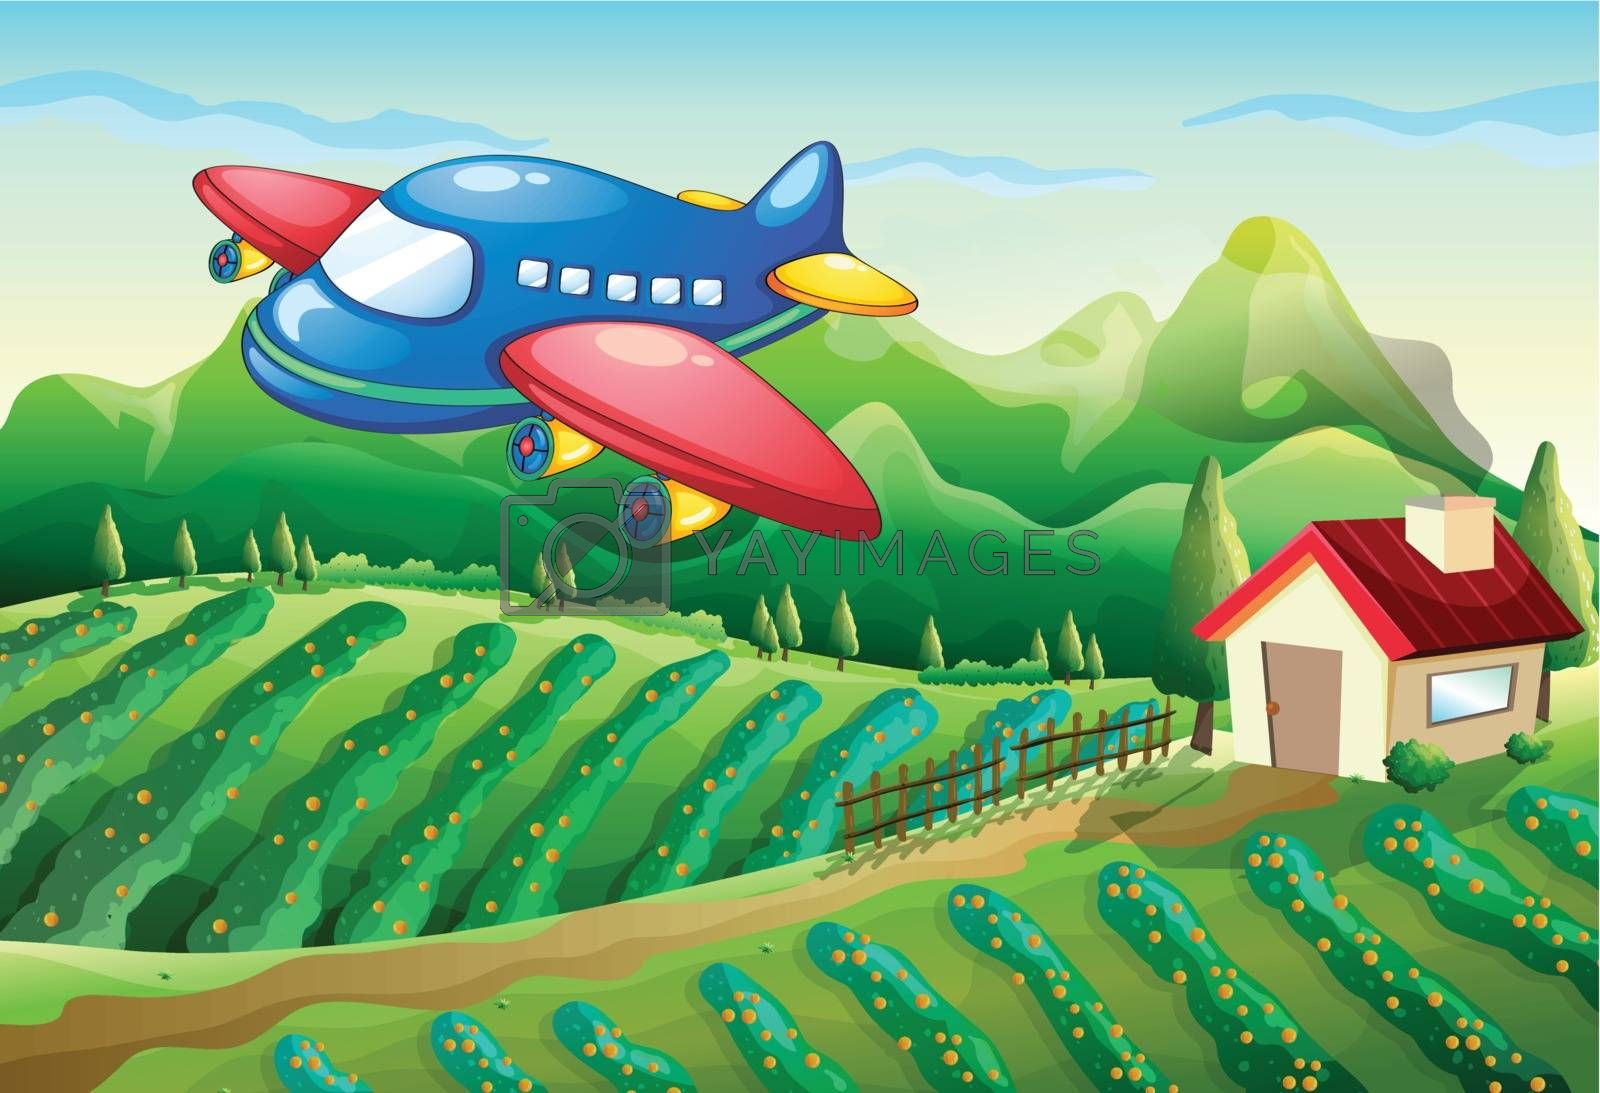 Illustration of an airplane above the farm with a house